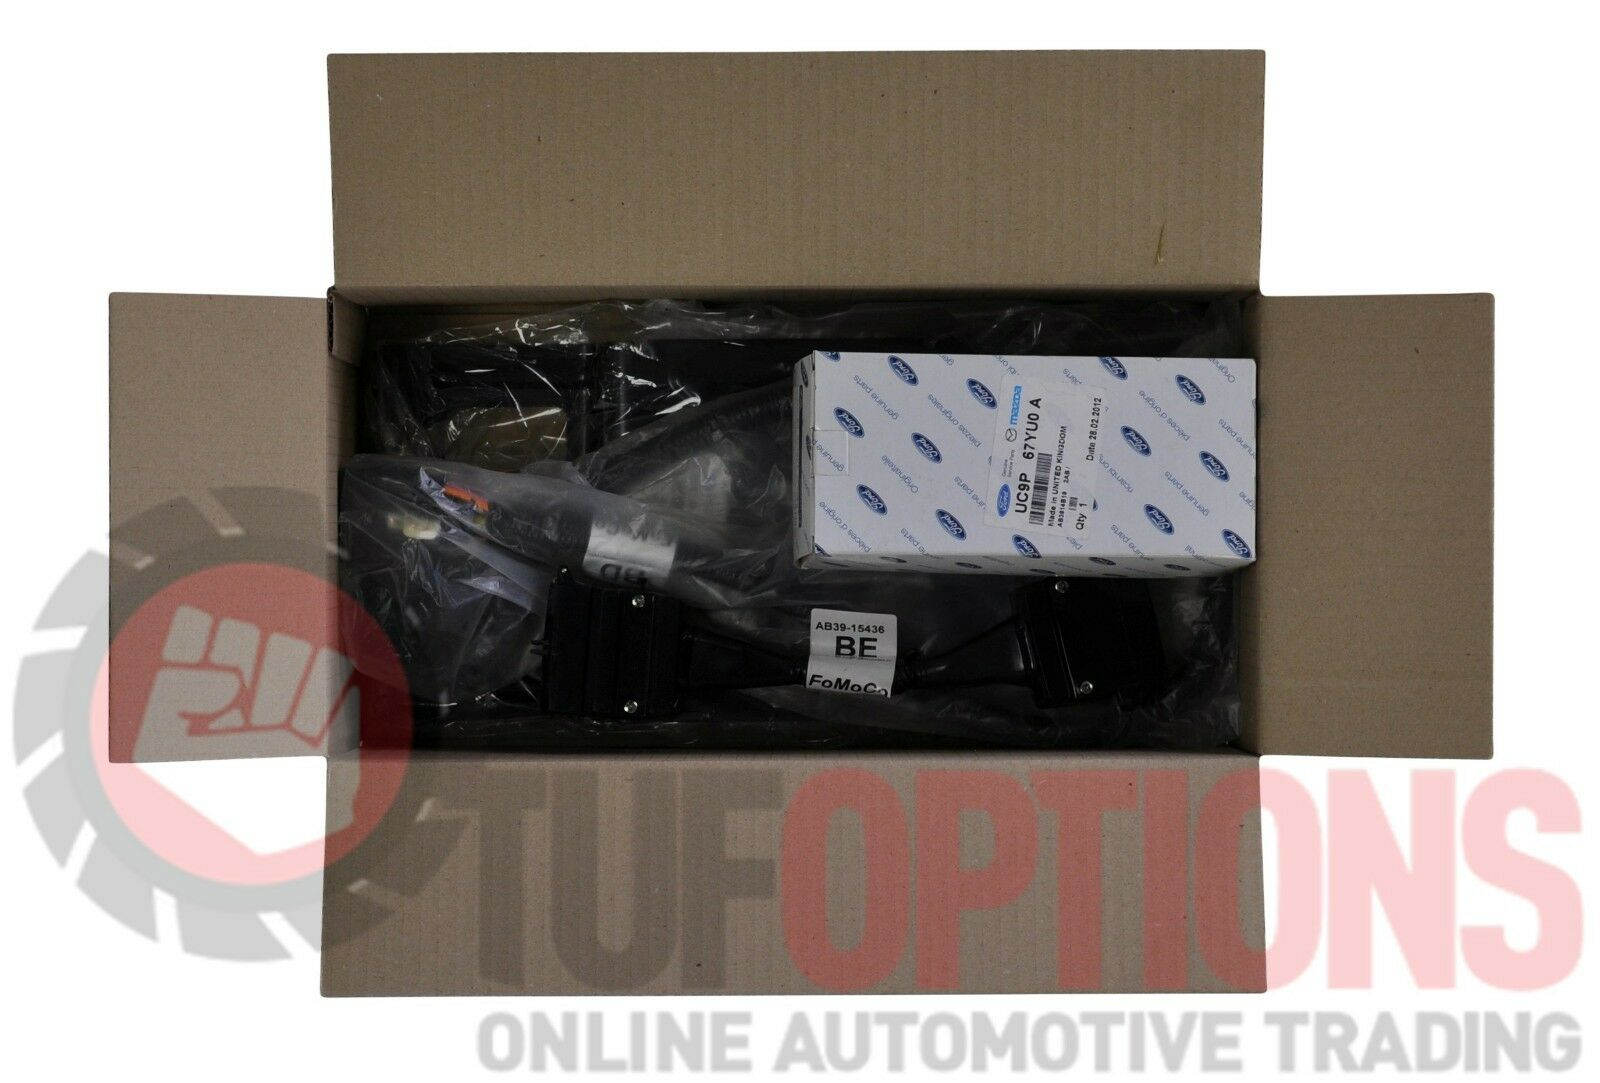 New Genuine Ford Px Ranger Trailer Towbar Wiring Harness Kit Led Non 1 Of 12only 2 Available See More